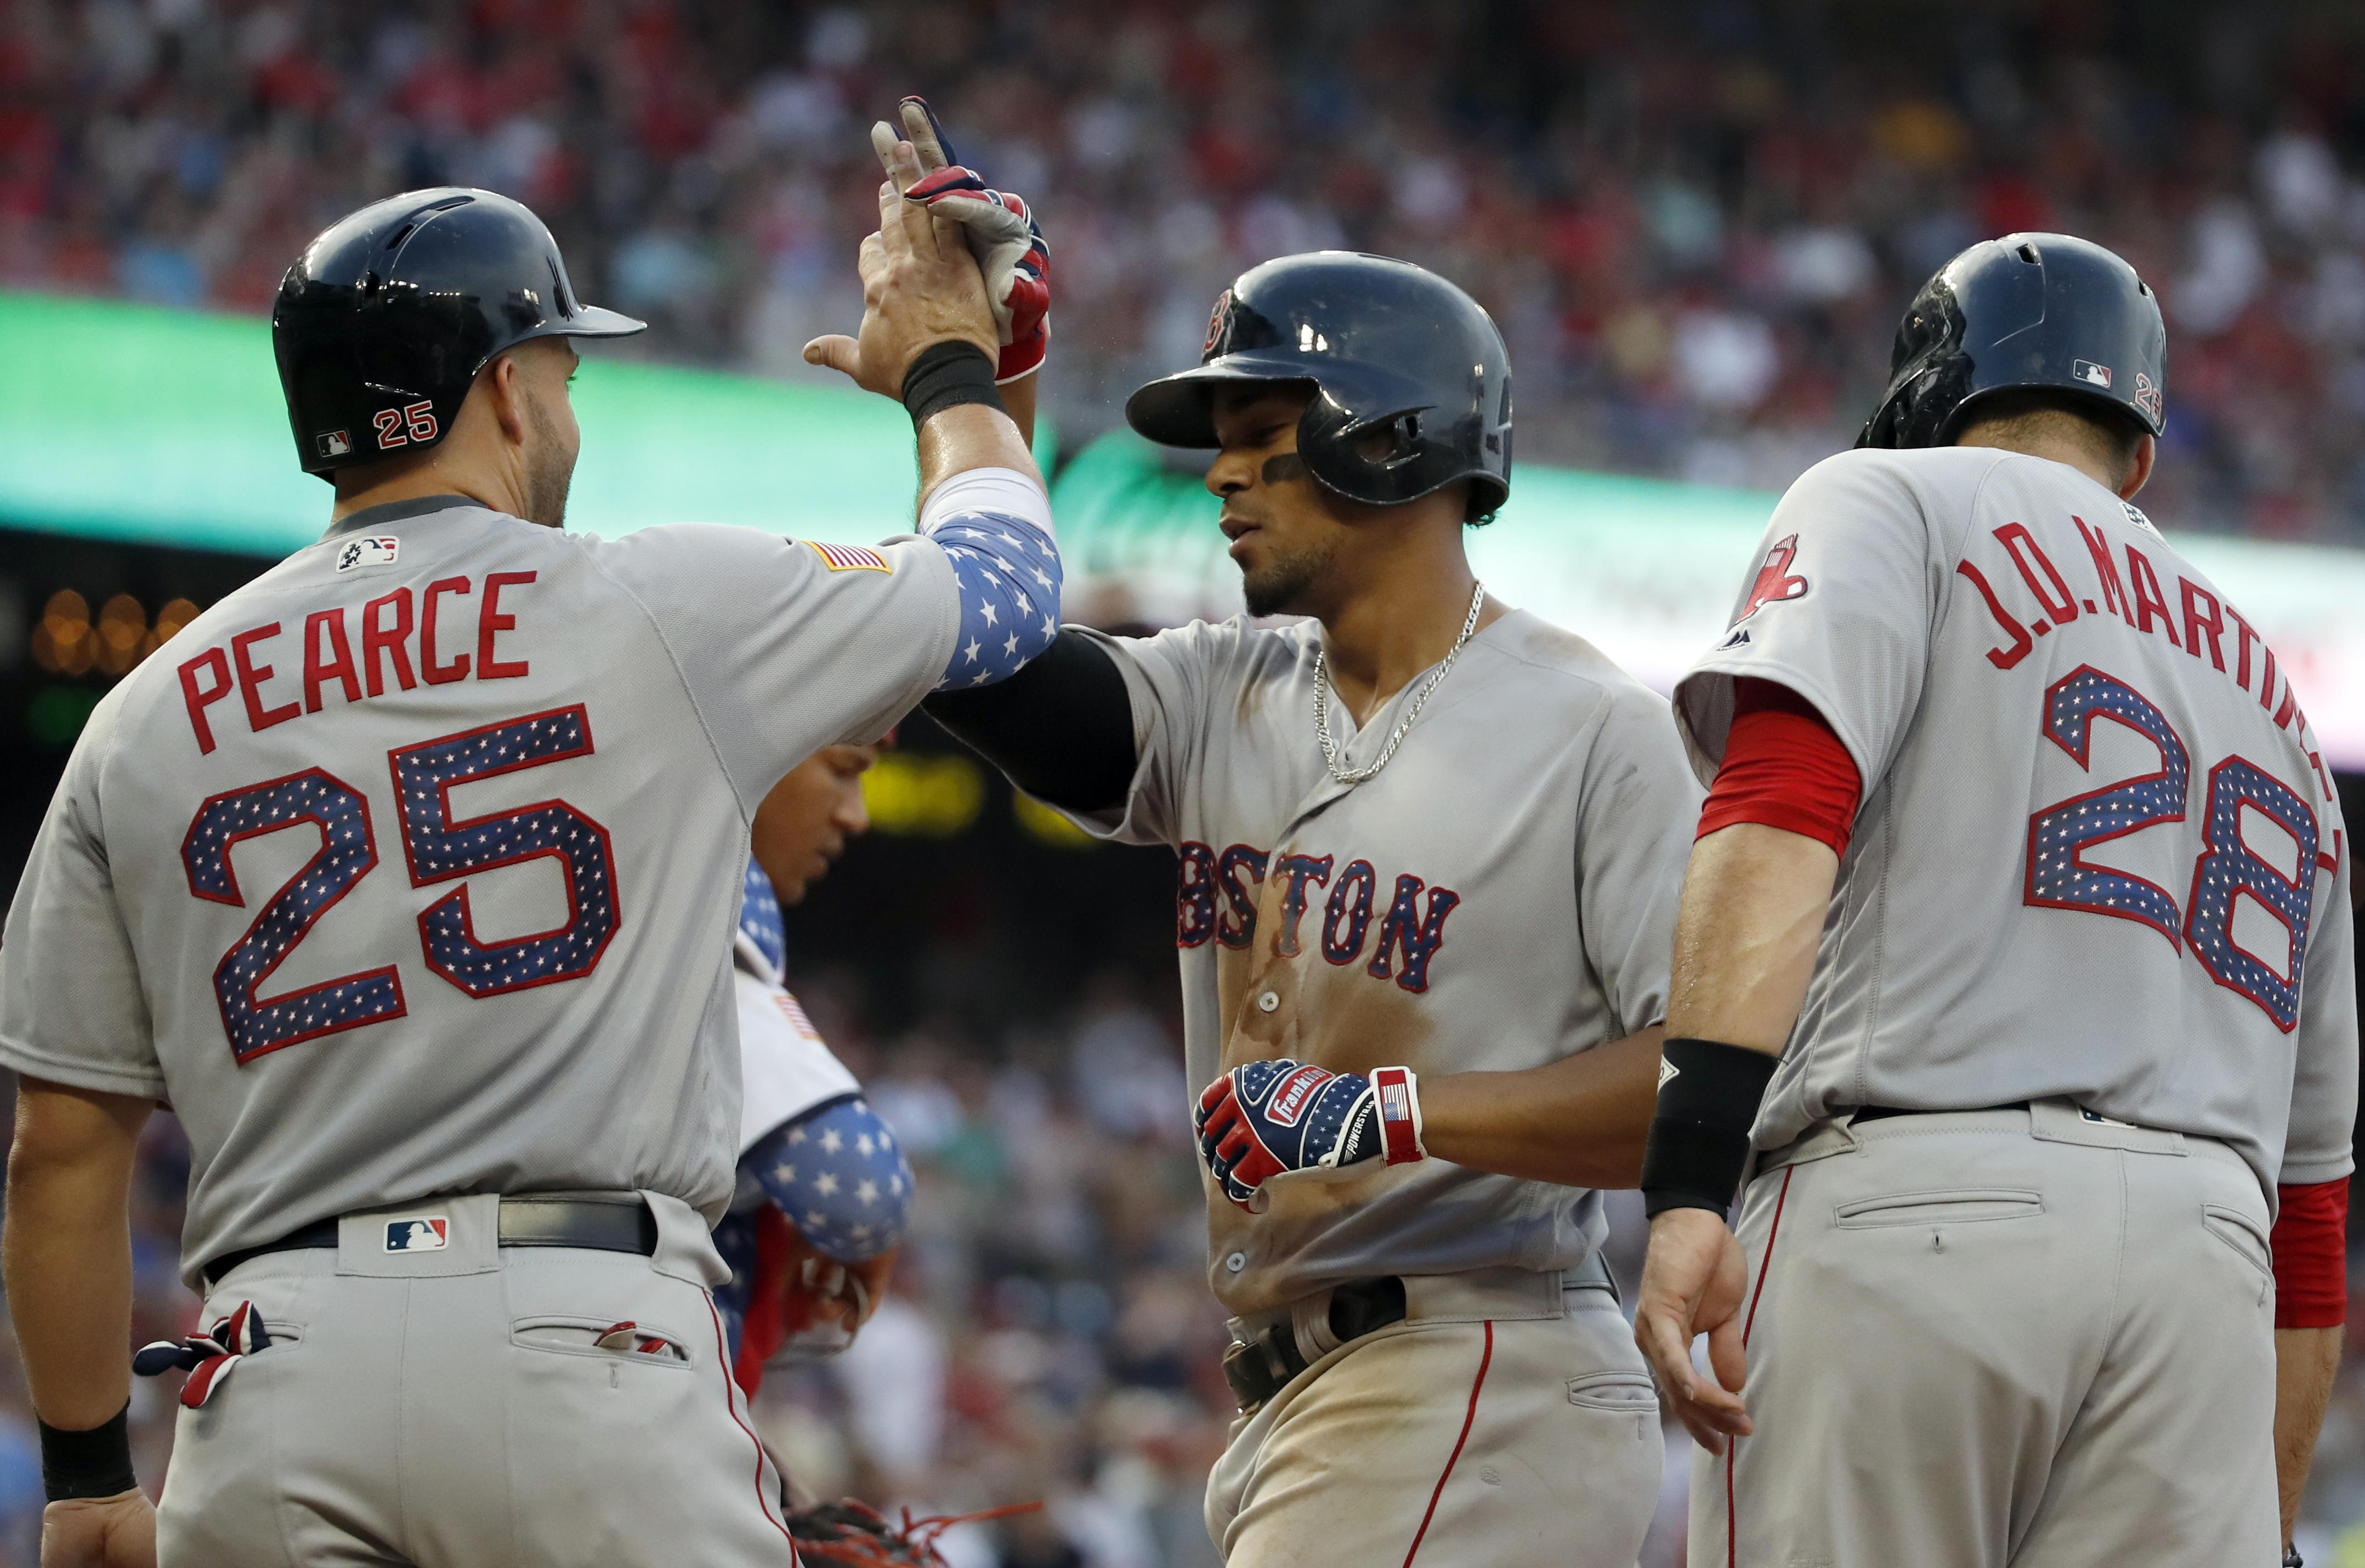 MLB Roundup: Boston Red Sox win 11-4 to drop Nationals to